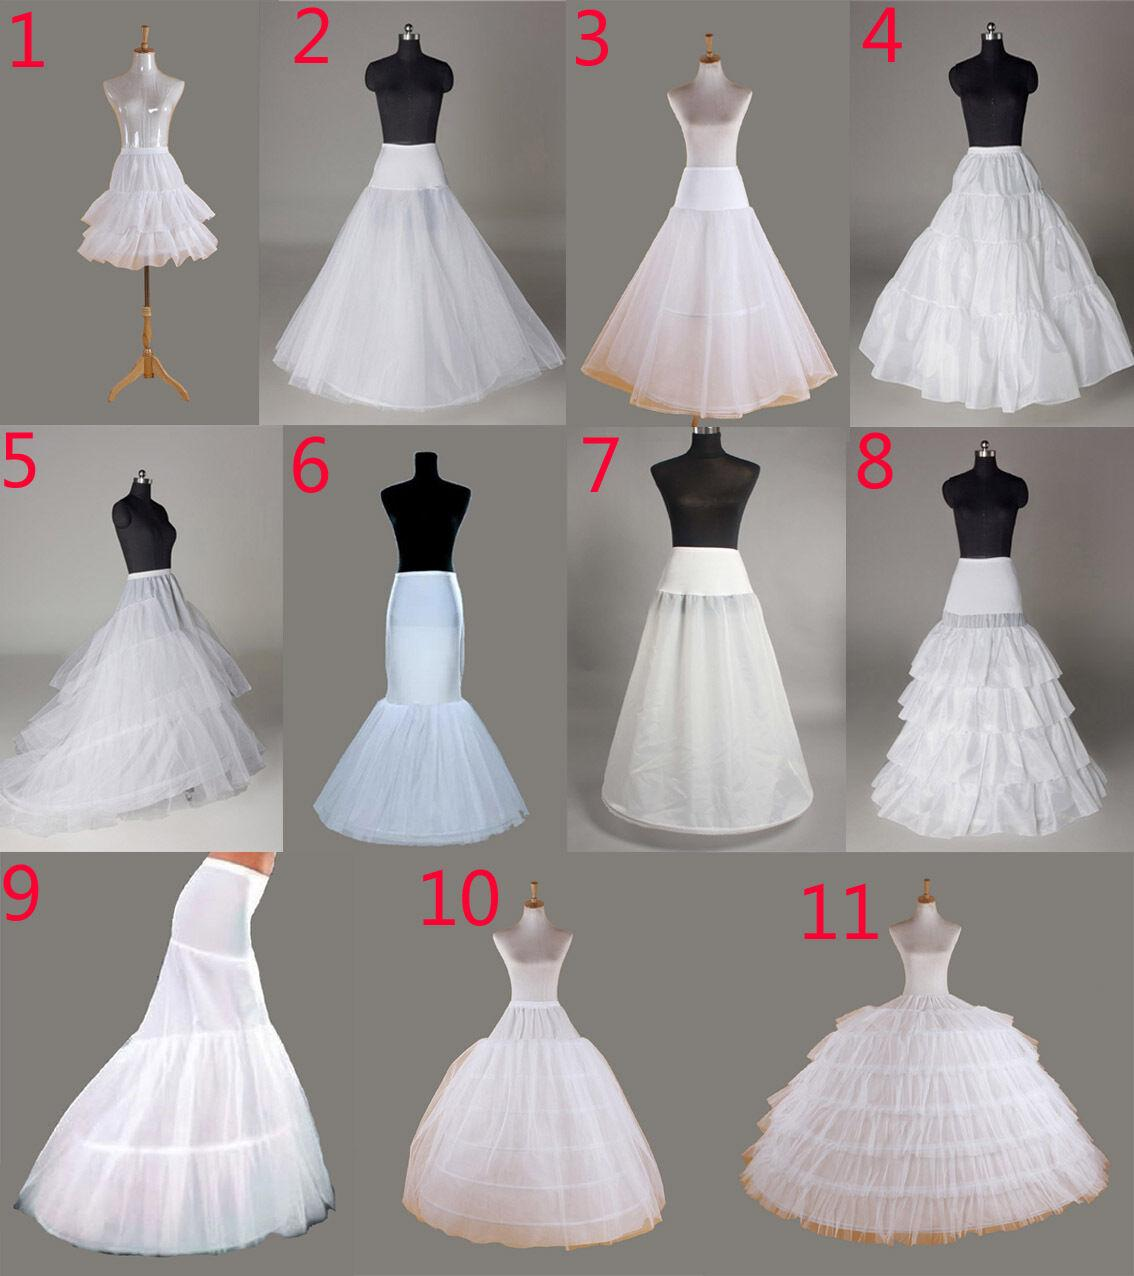 Petticoat crinoline hoop underskirt Wedding petticoat fishtail mermaid prom